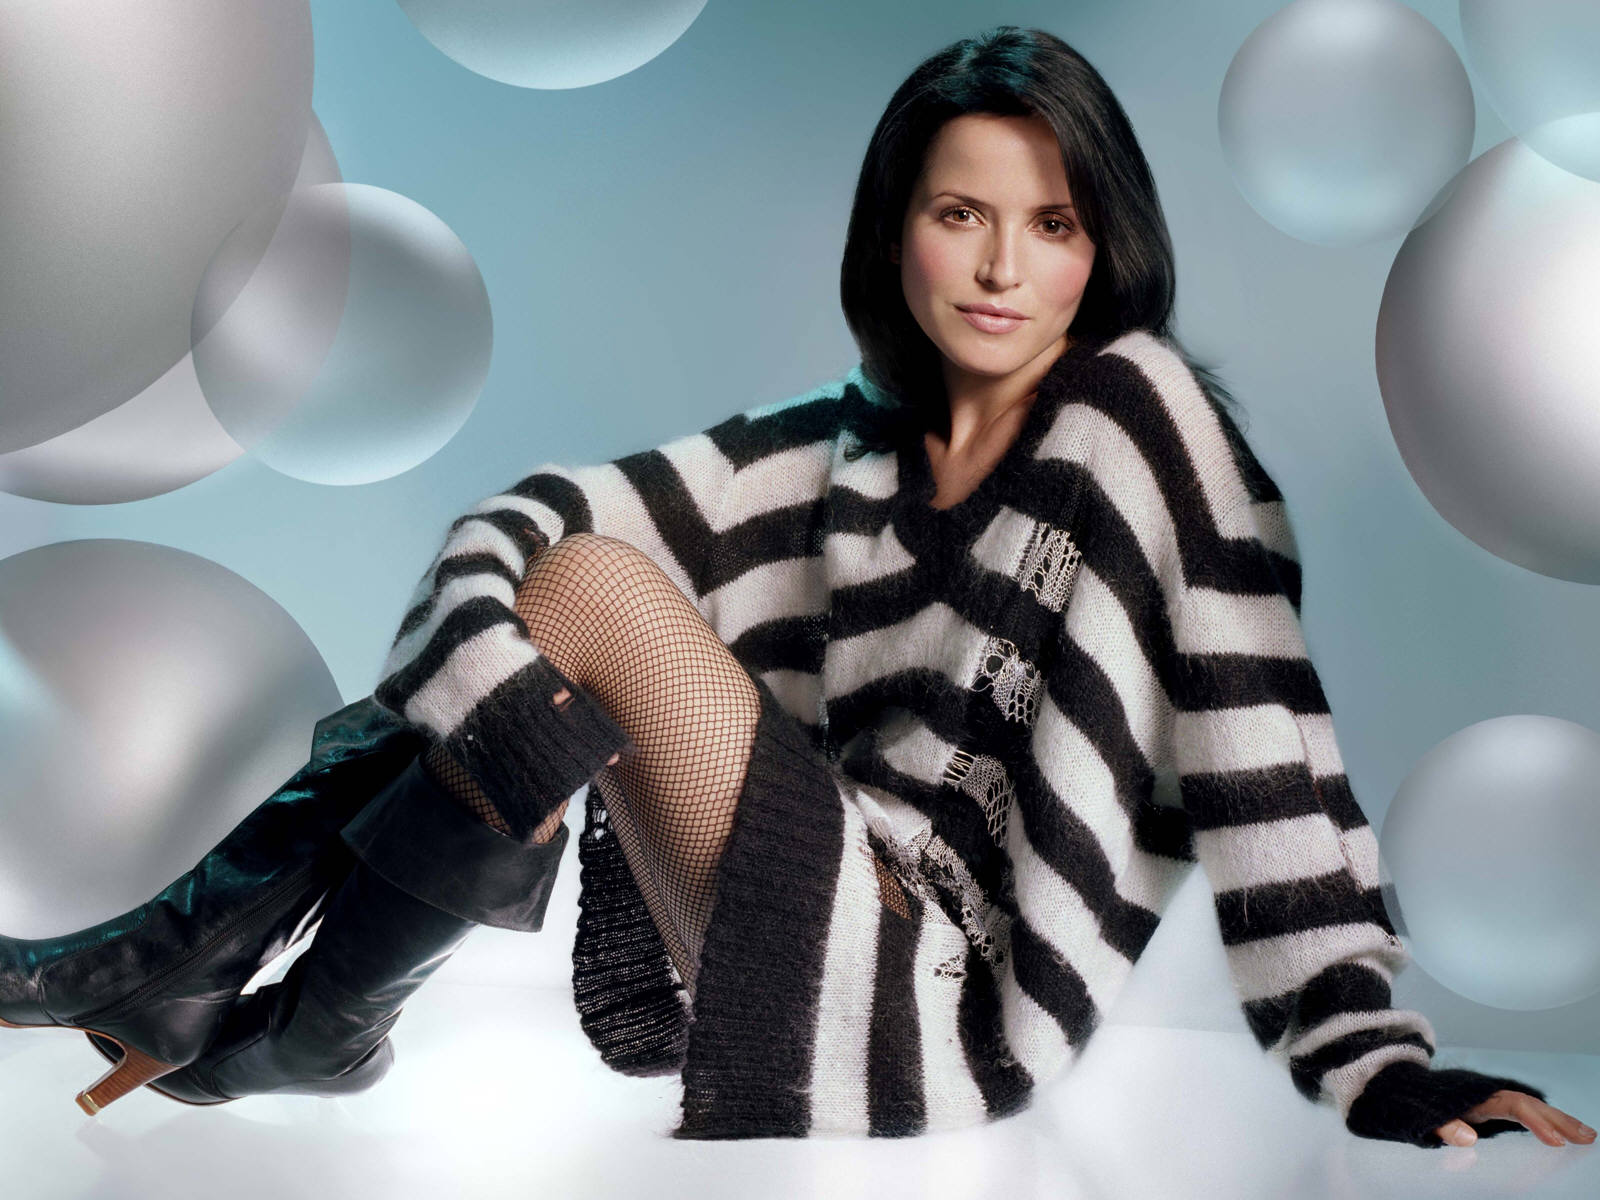 hot Andrea corr